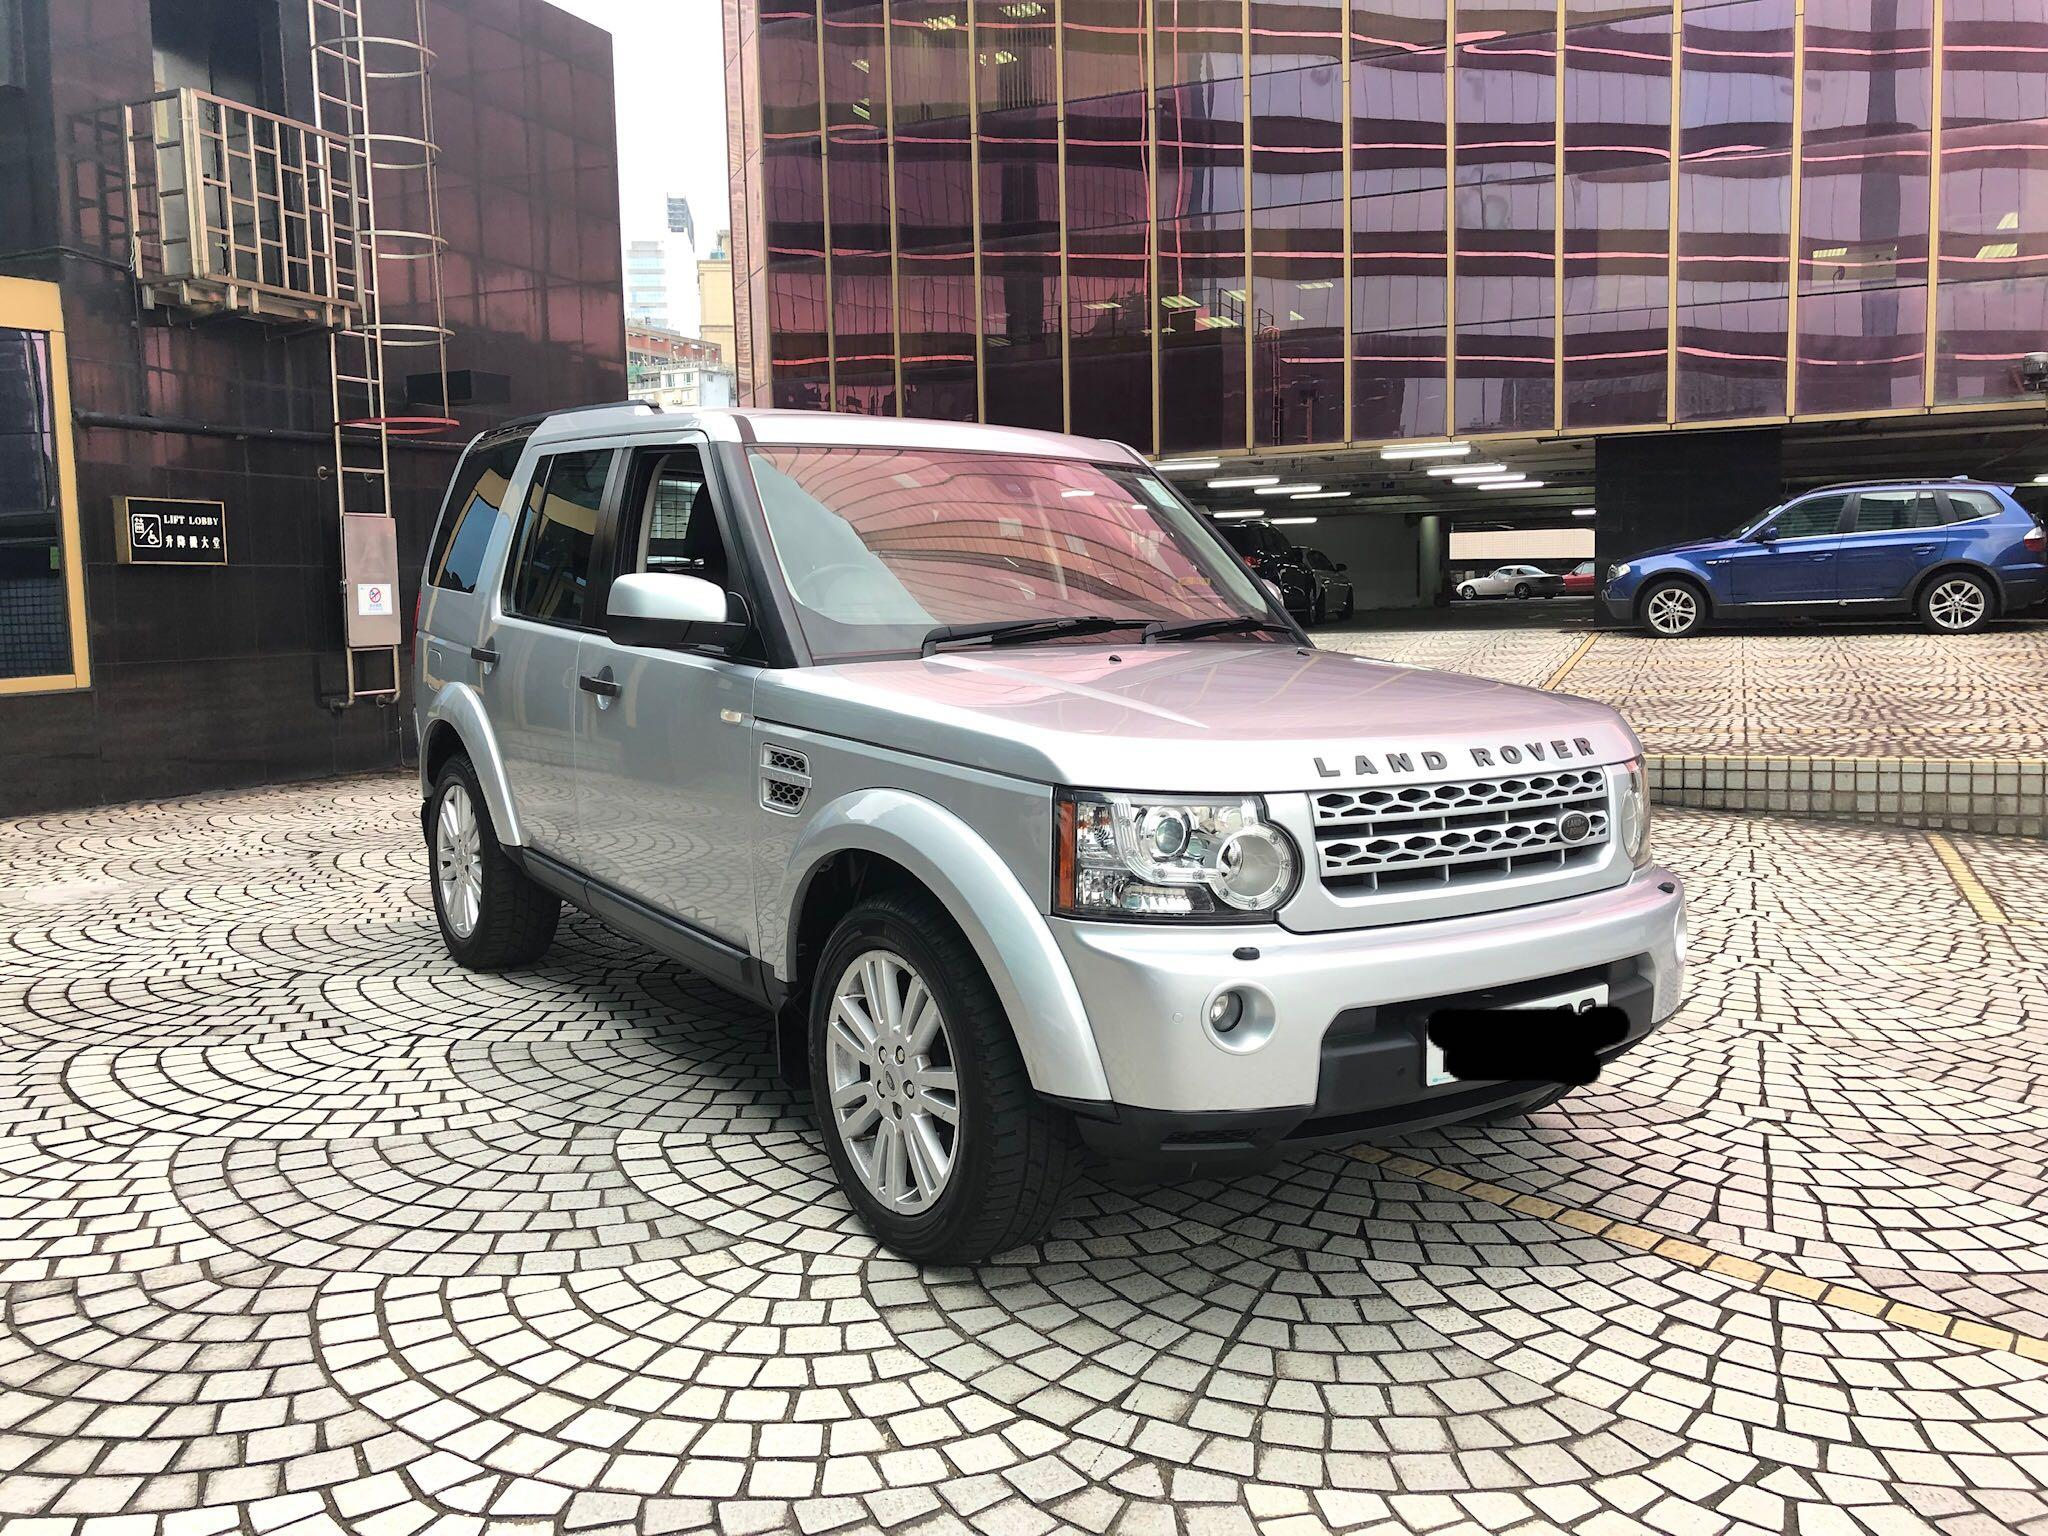 2011/12 LAND ROVER DISCOVERY 4 3.0 DIESEL